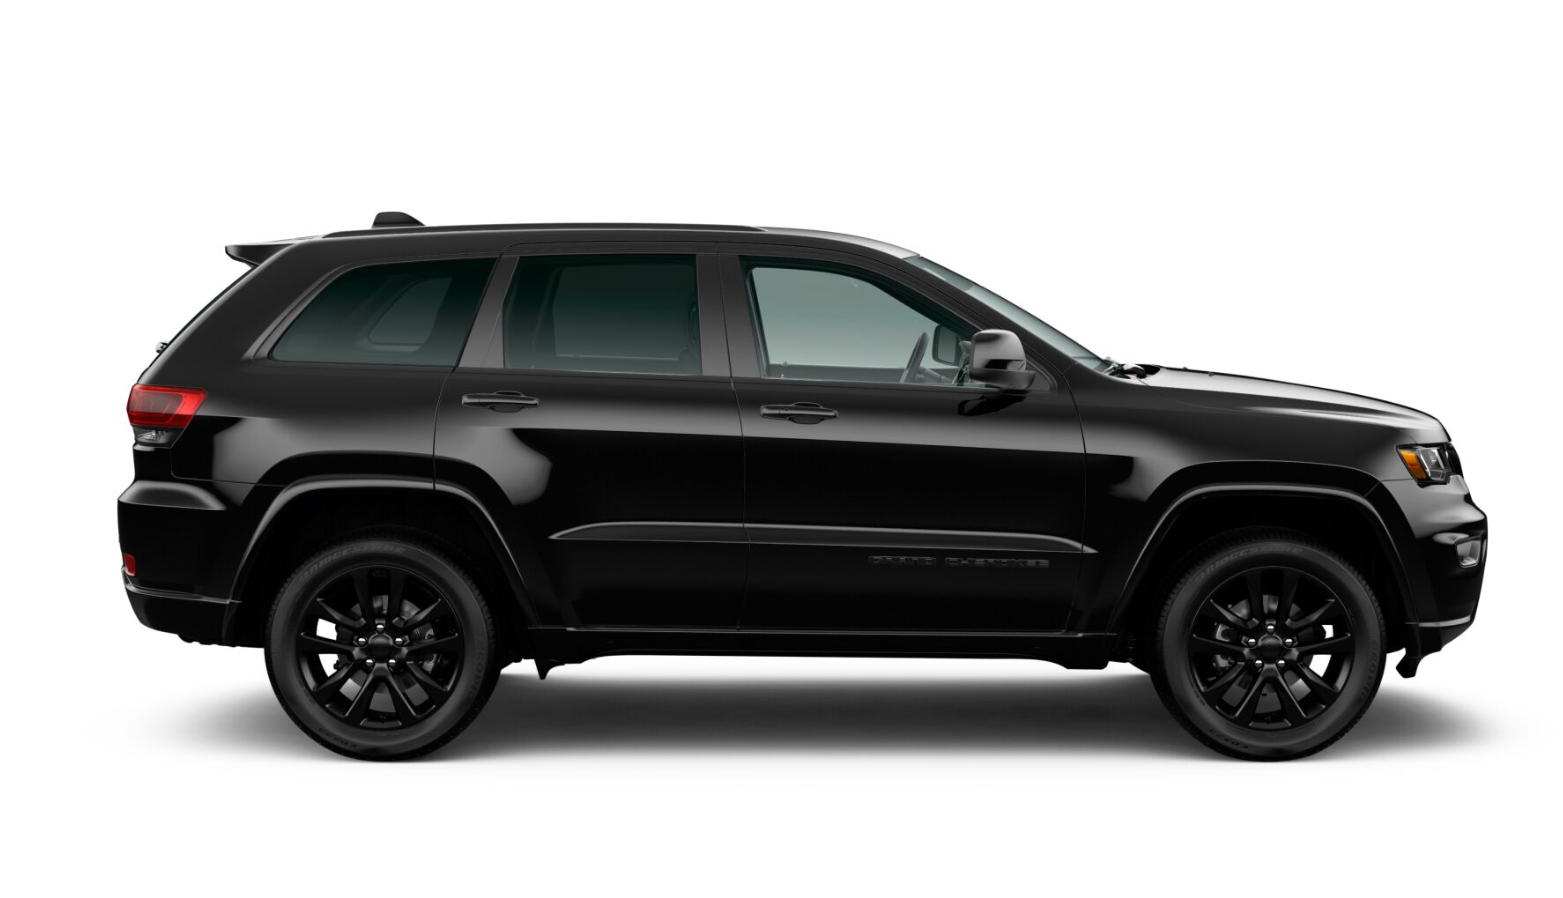 2020 Jeep Grand Cherokee Altitude Side View Black Exterior.png